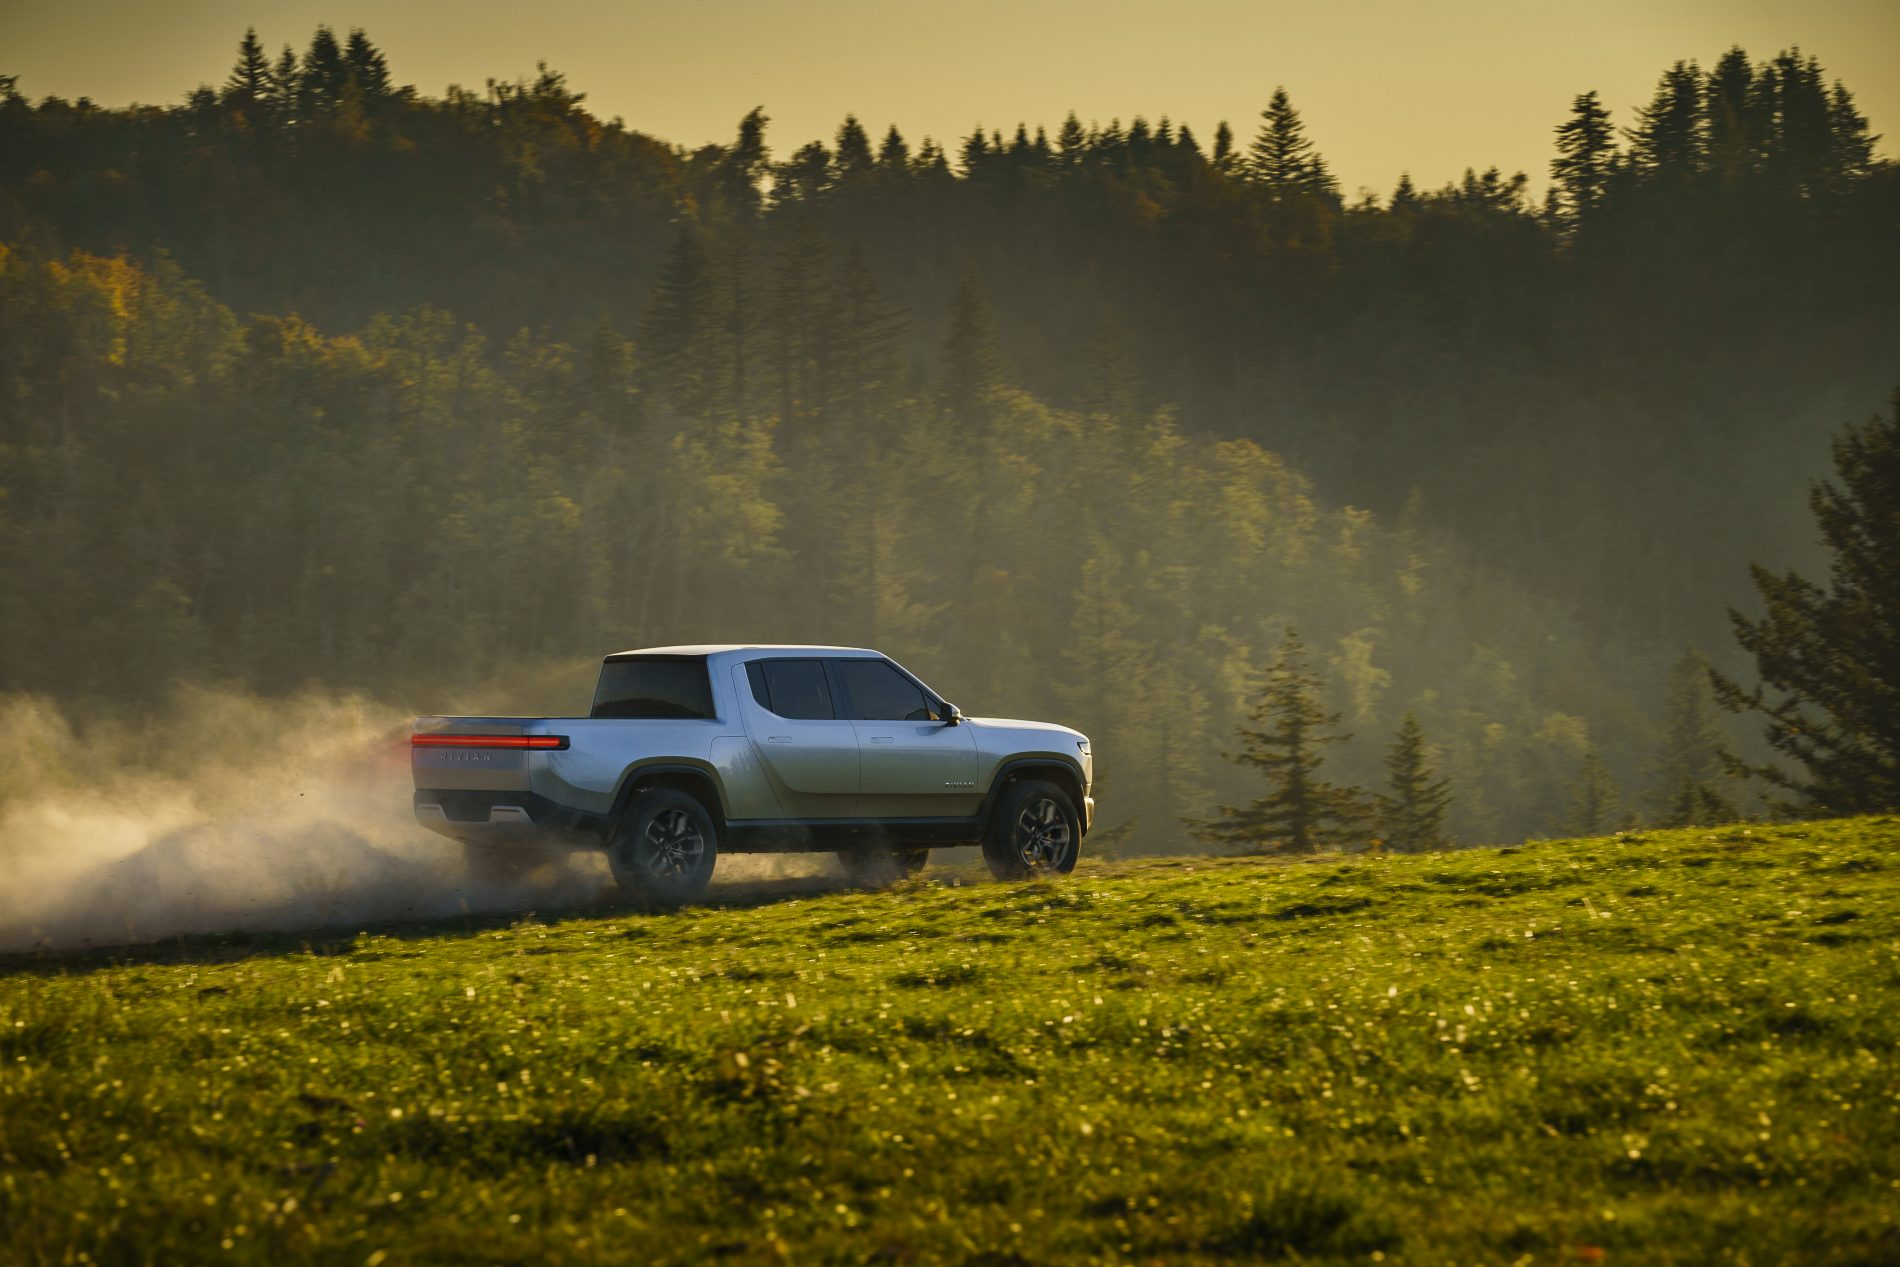 rivian-r1t-electric-pickup-truck-unveiled-as-the-monster-ford-and-chevy-fear_24